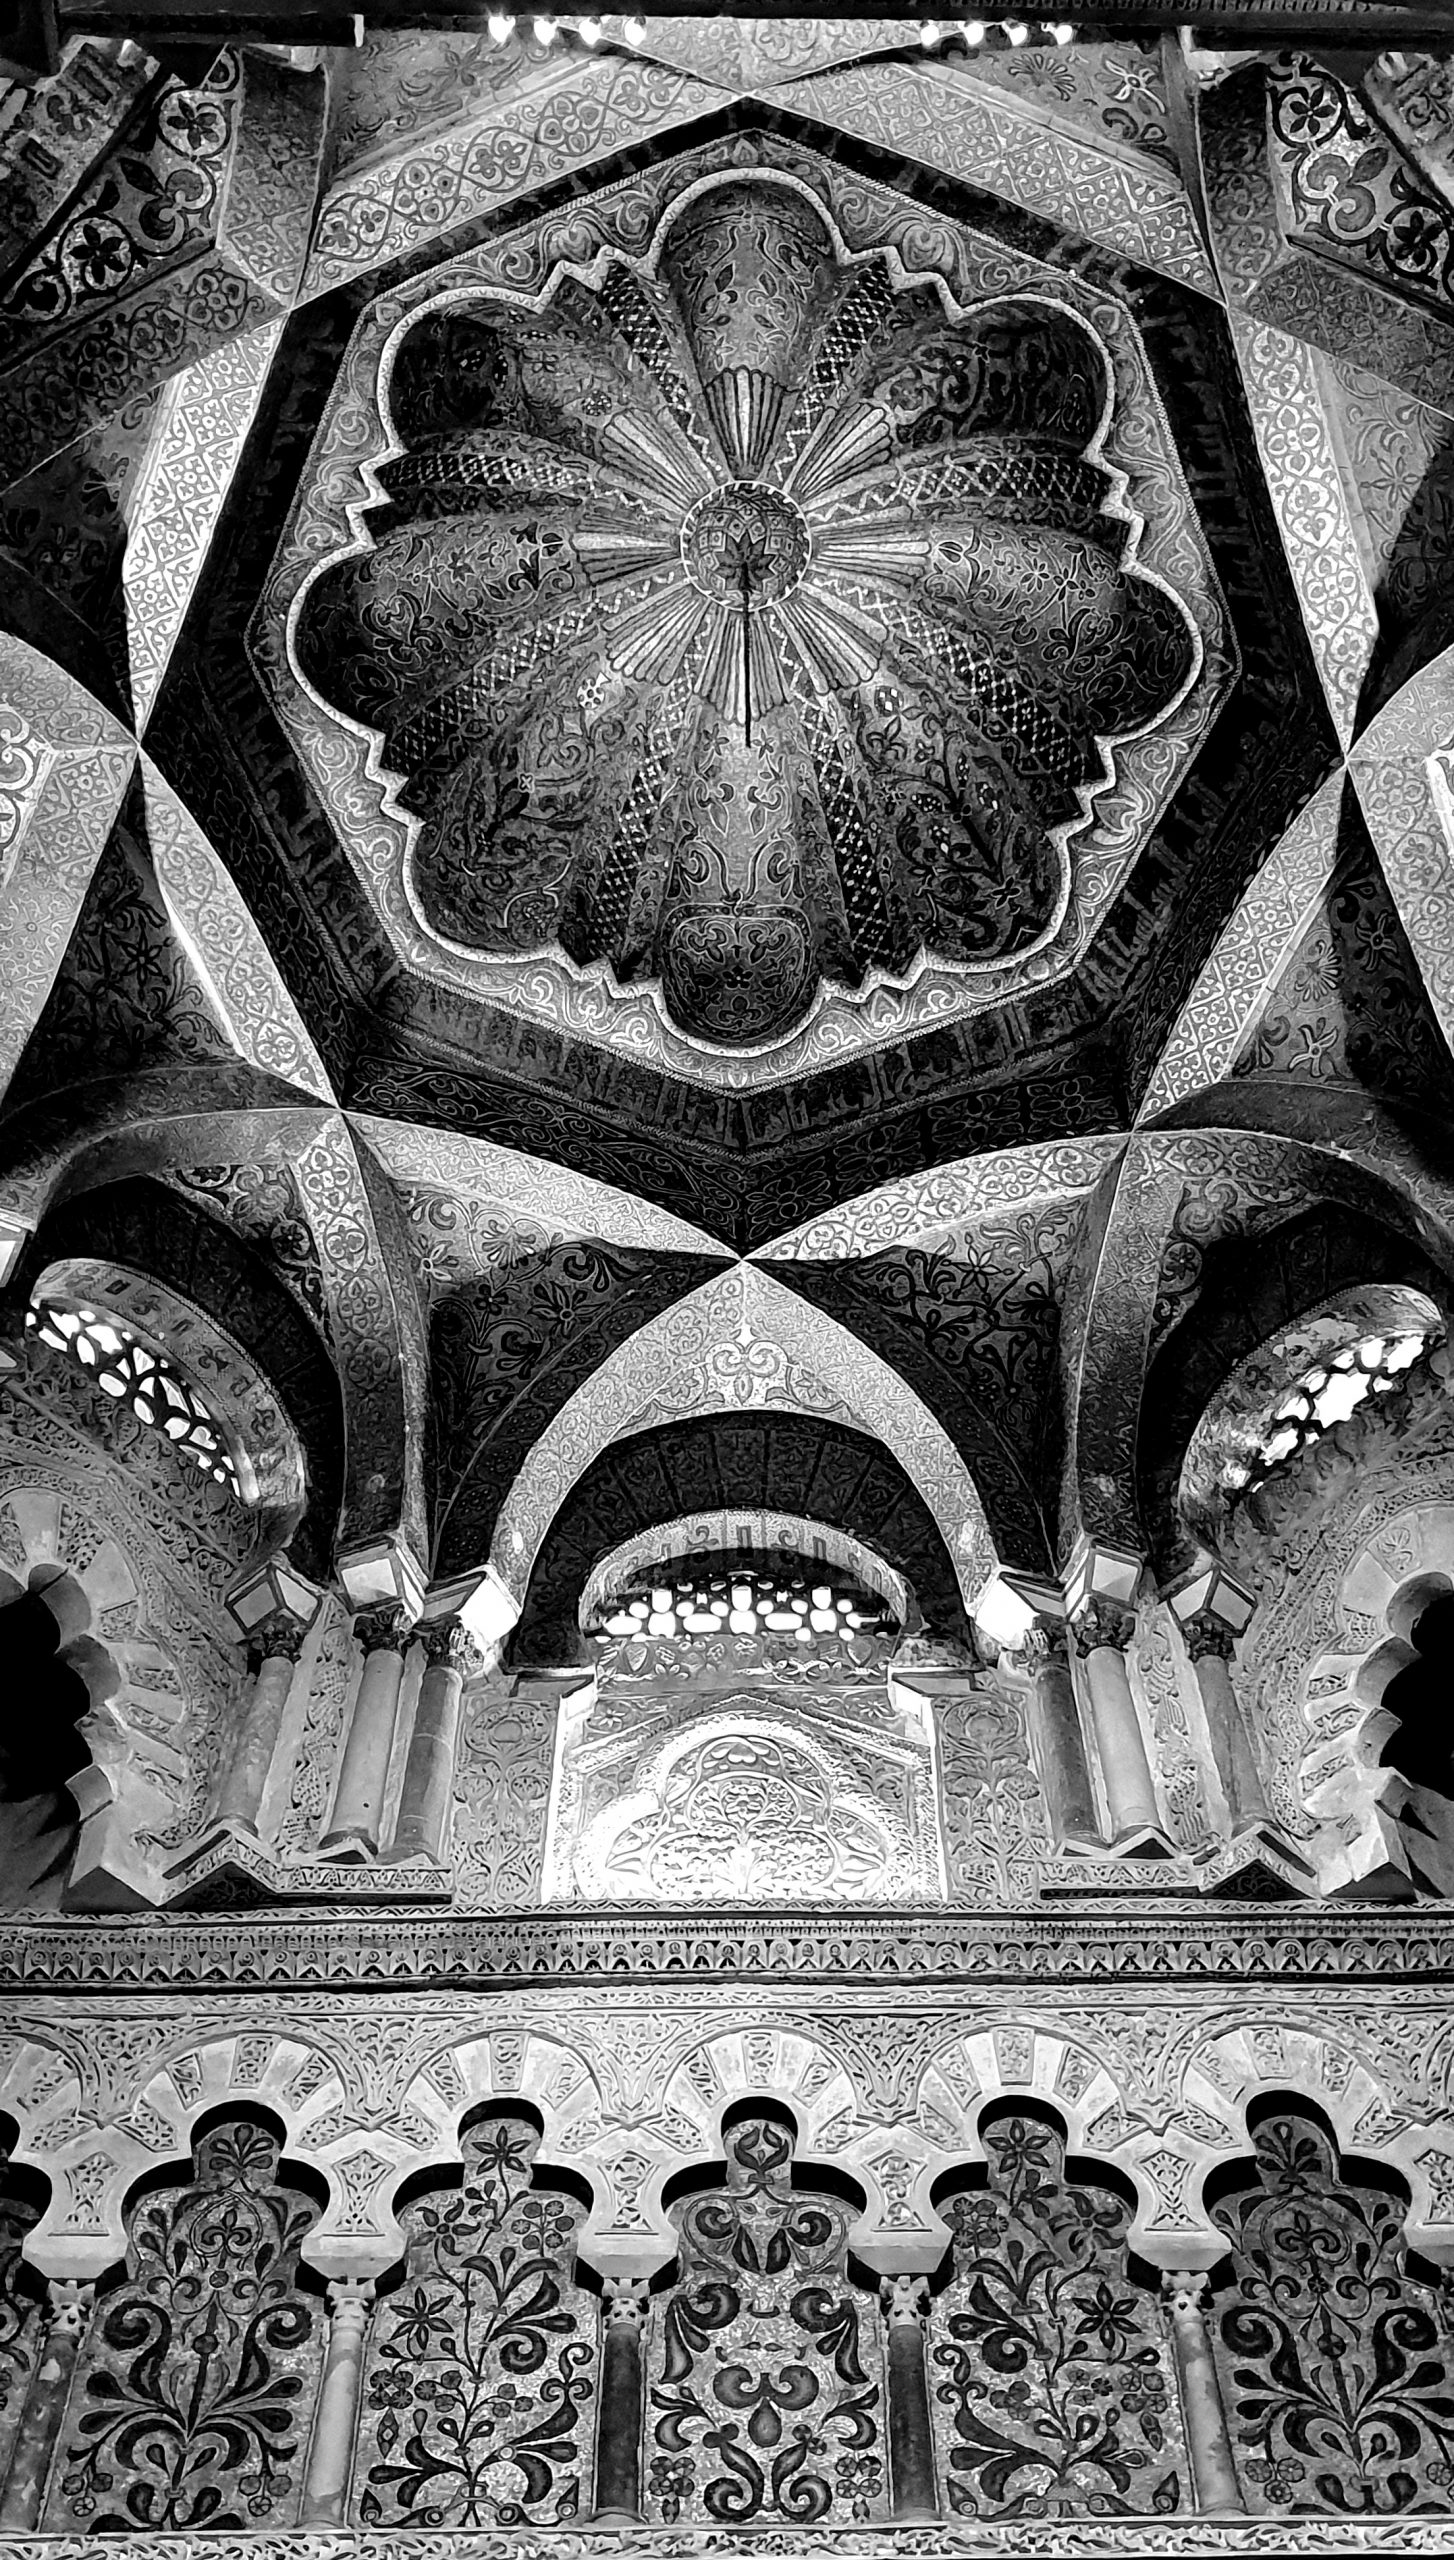 CORDOBA , 2021 | Digital print on bright white photo rag Edition of 8 + 2 AP 59 x 35.2 cm Edition of 8 plus 2 artist's proofs Signed and numbered